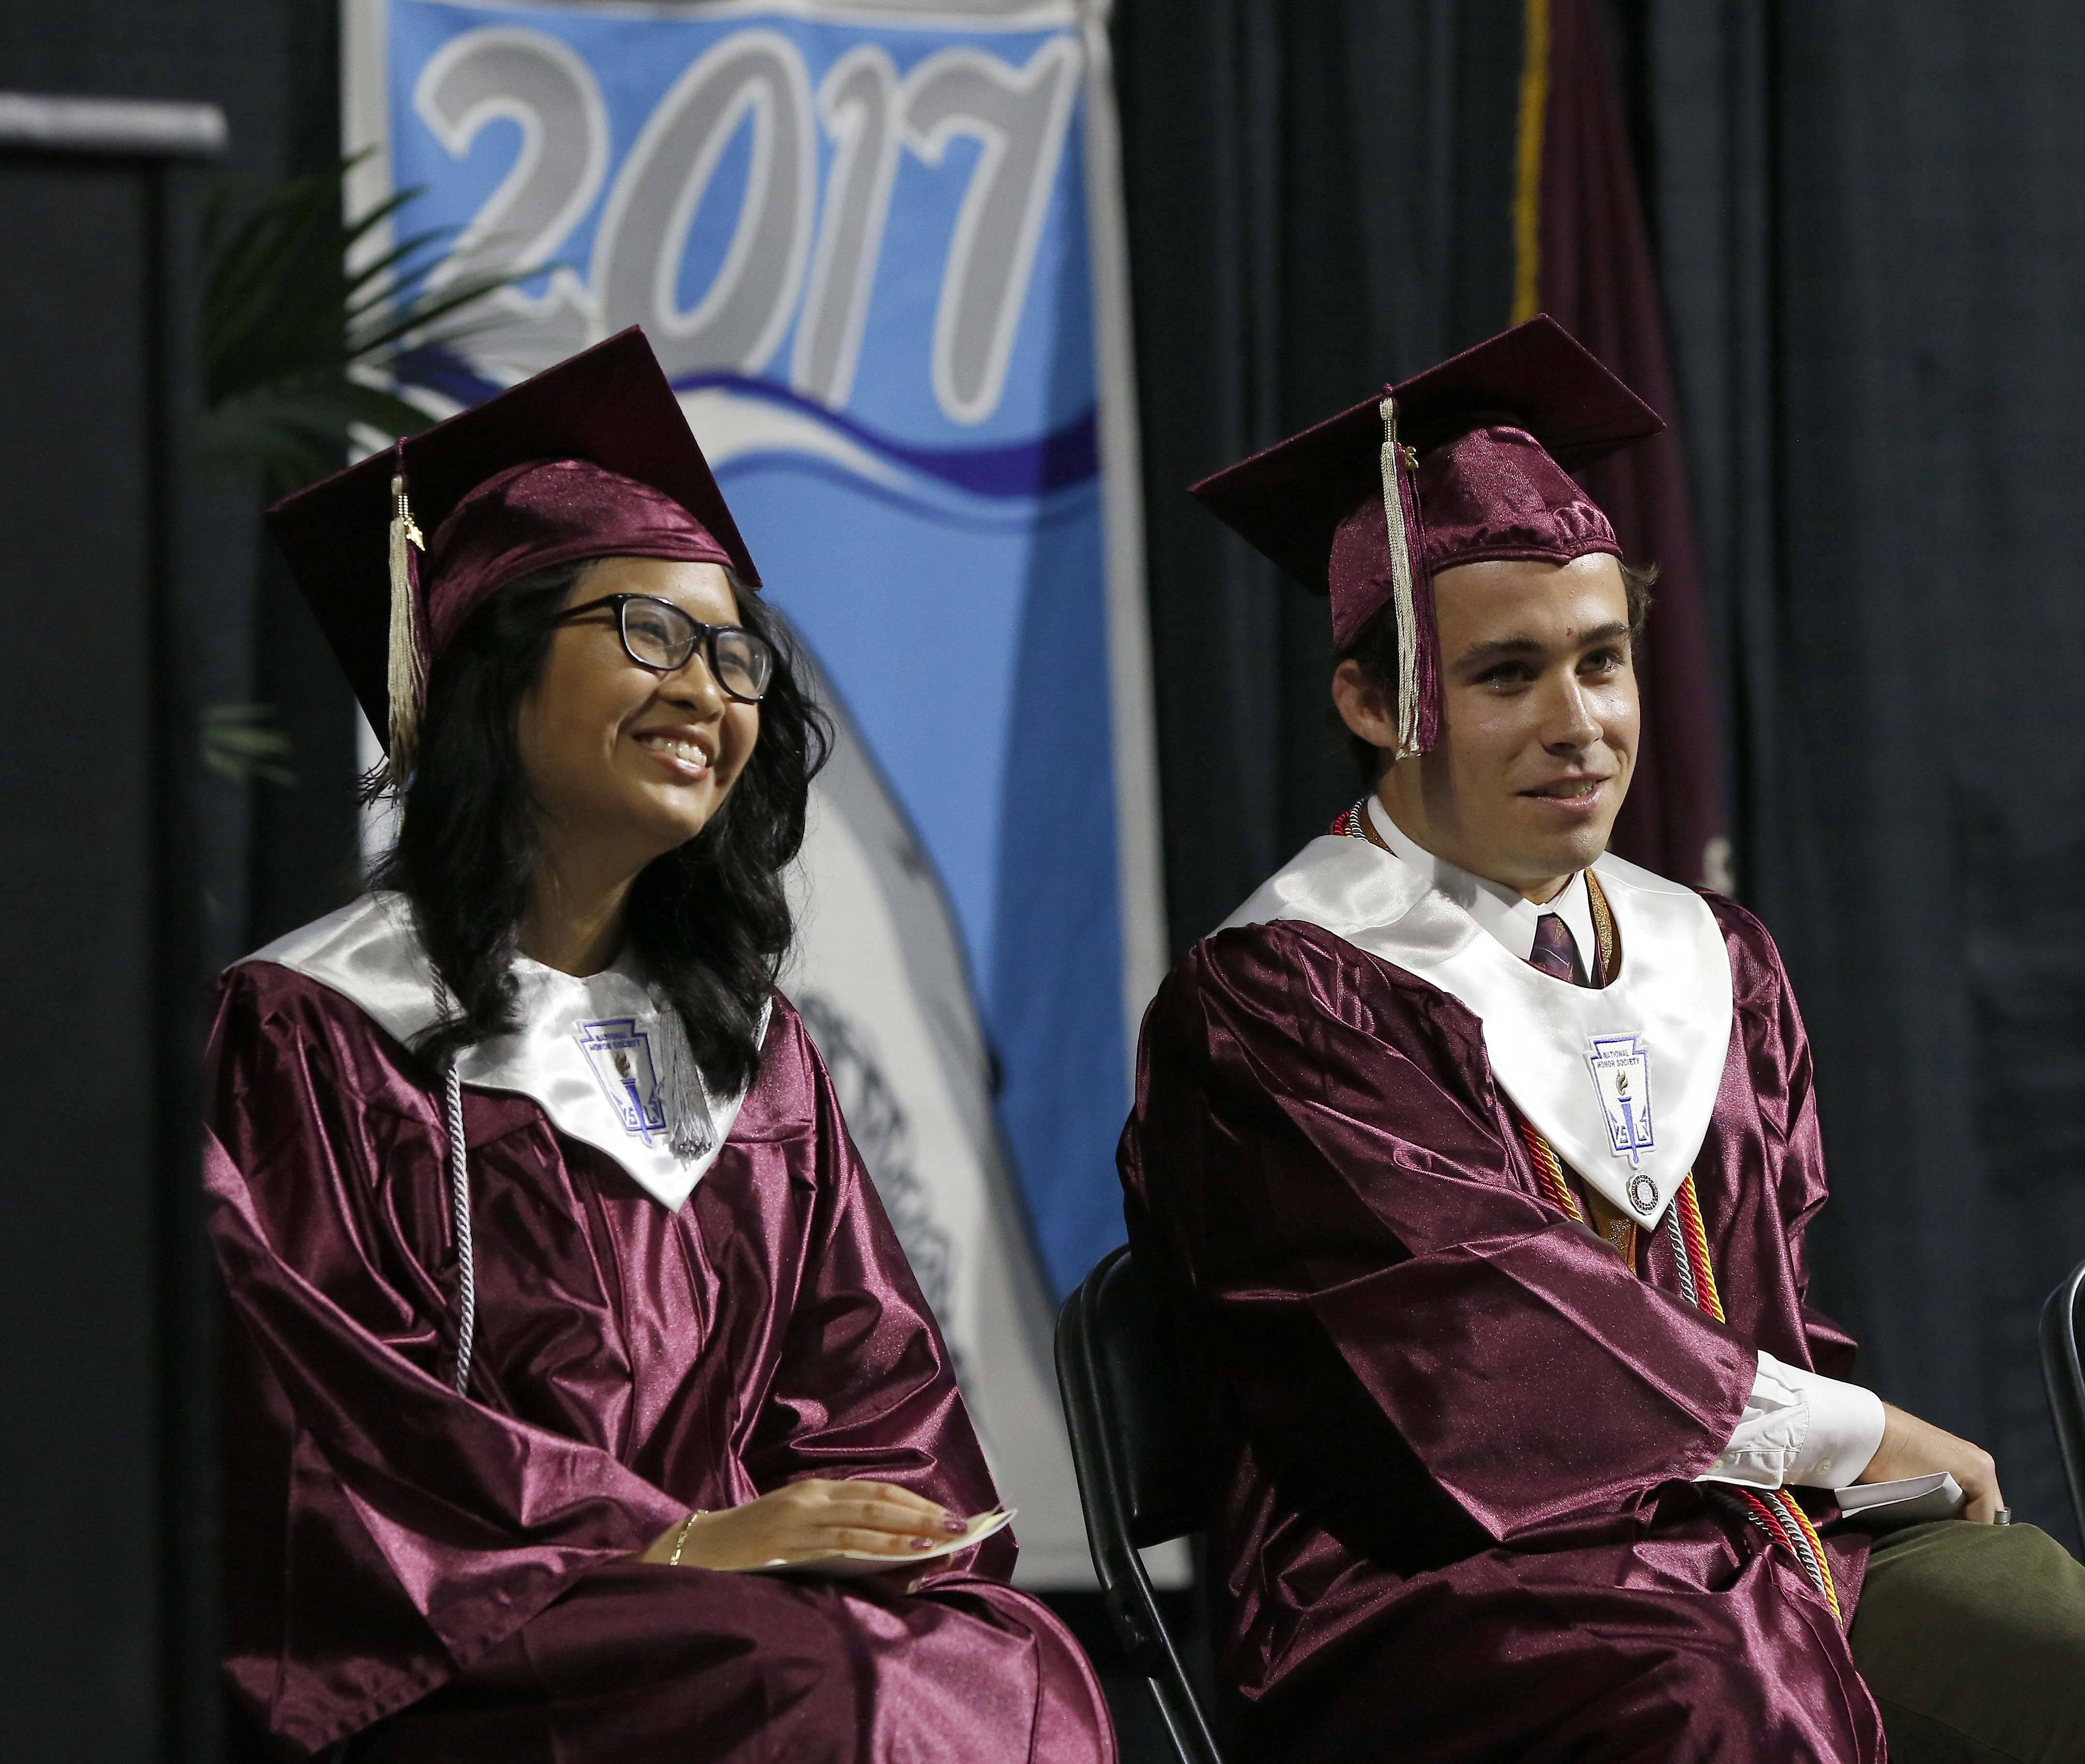 Valedictorians of Elgin High School Class 2017 Anna Bounchaleun and Maximilian Troyke after their speeches during the commencement ceremony, Saturday, May 27 at the Sears Centre in Hoffman Estates.